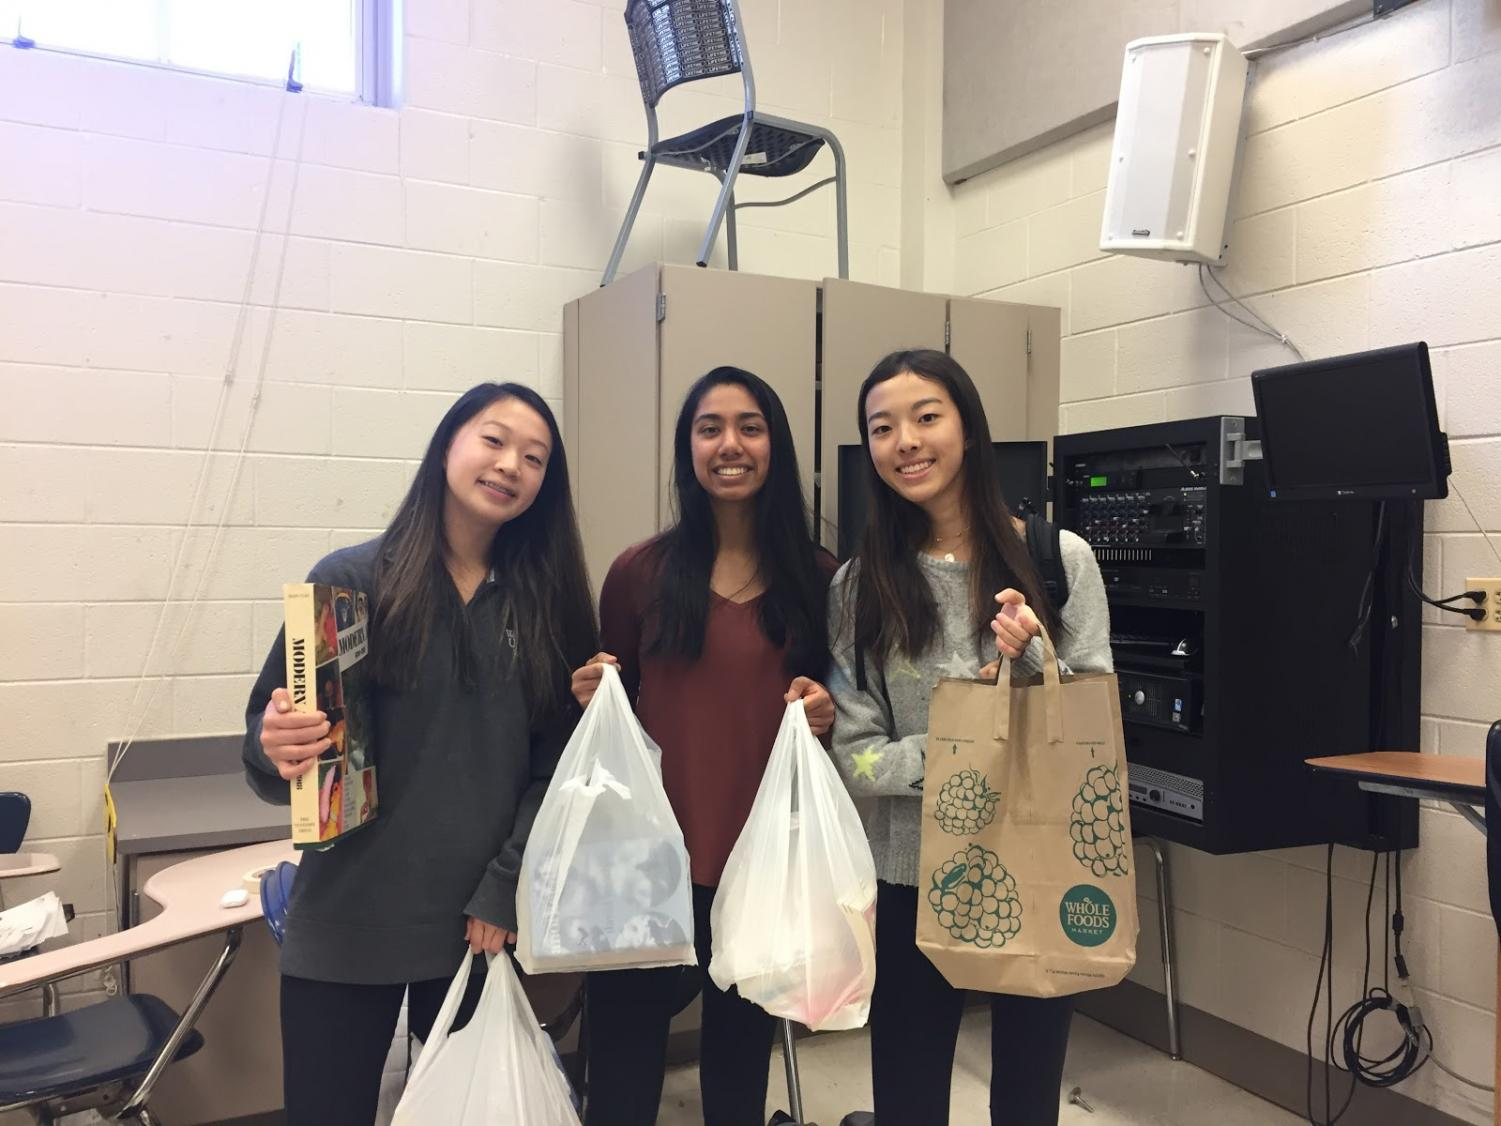 Sophomore Jessica Lin and her friends attended the EHS' fourth annual book fair. Lin bought ten books./Photo 2: Students browse the books at the EHS Book Fair. There were many different genres of books including fantasy, historical fiction and test-prep books.